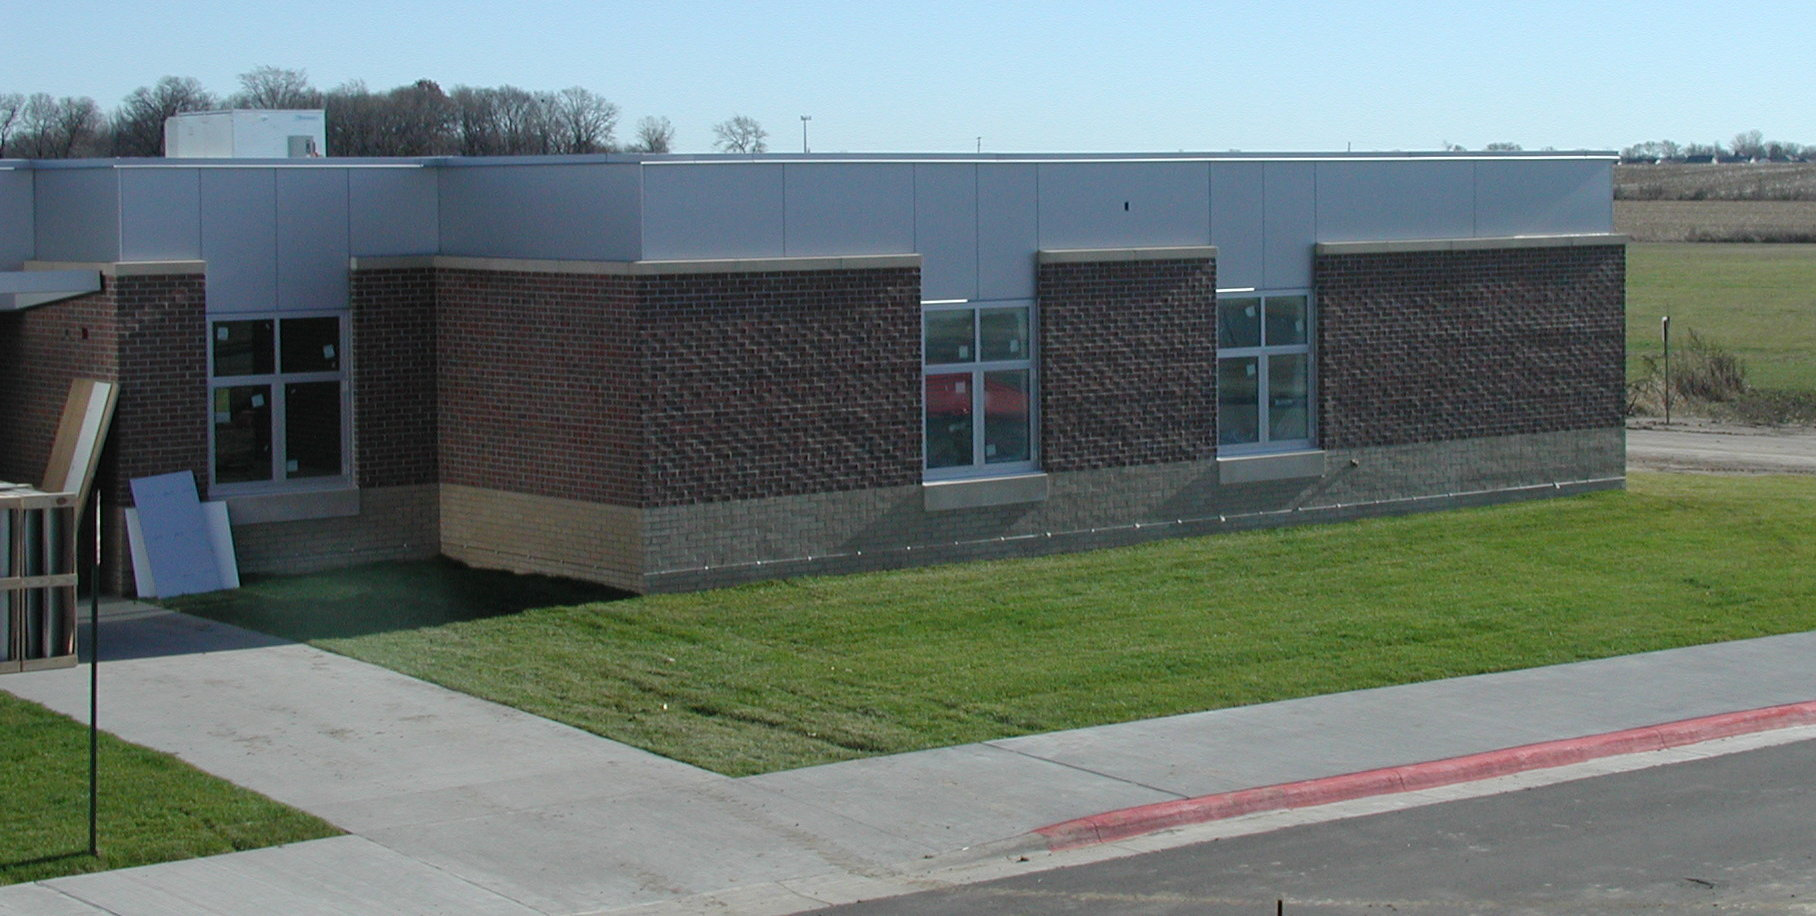 oak ridge middle eastern single men Guilford county schools is a school district in the state of north carolina the state's third largest district, it serves greensboro and high point  guilford county schools.